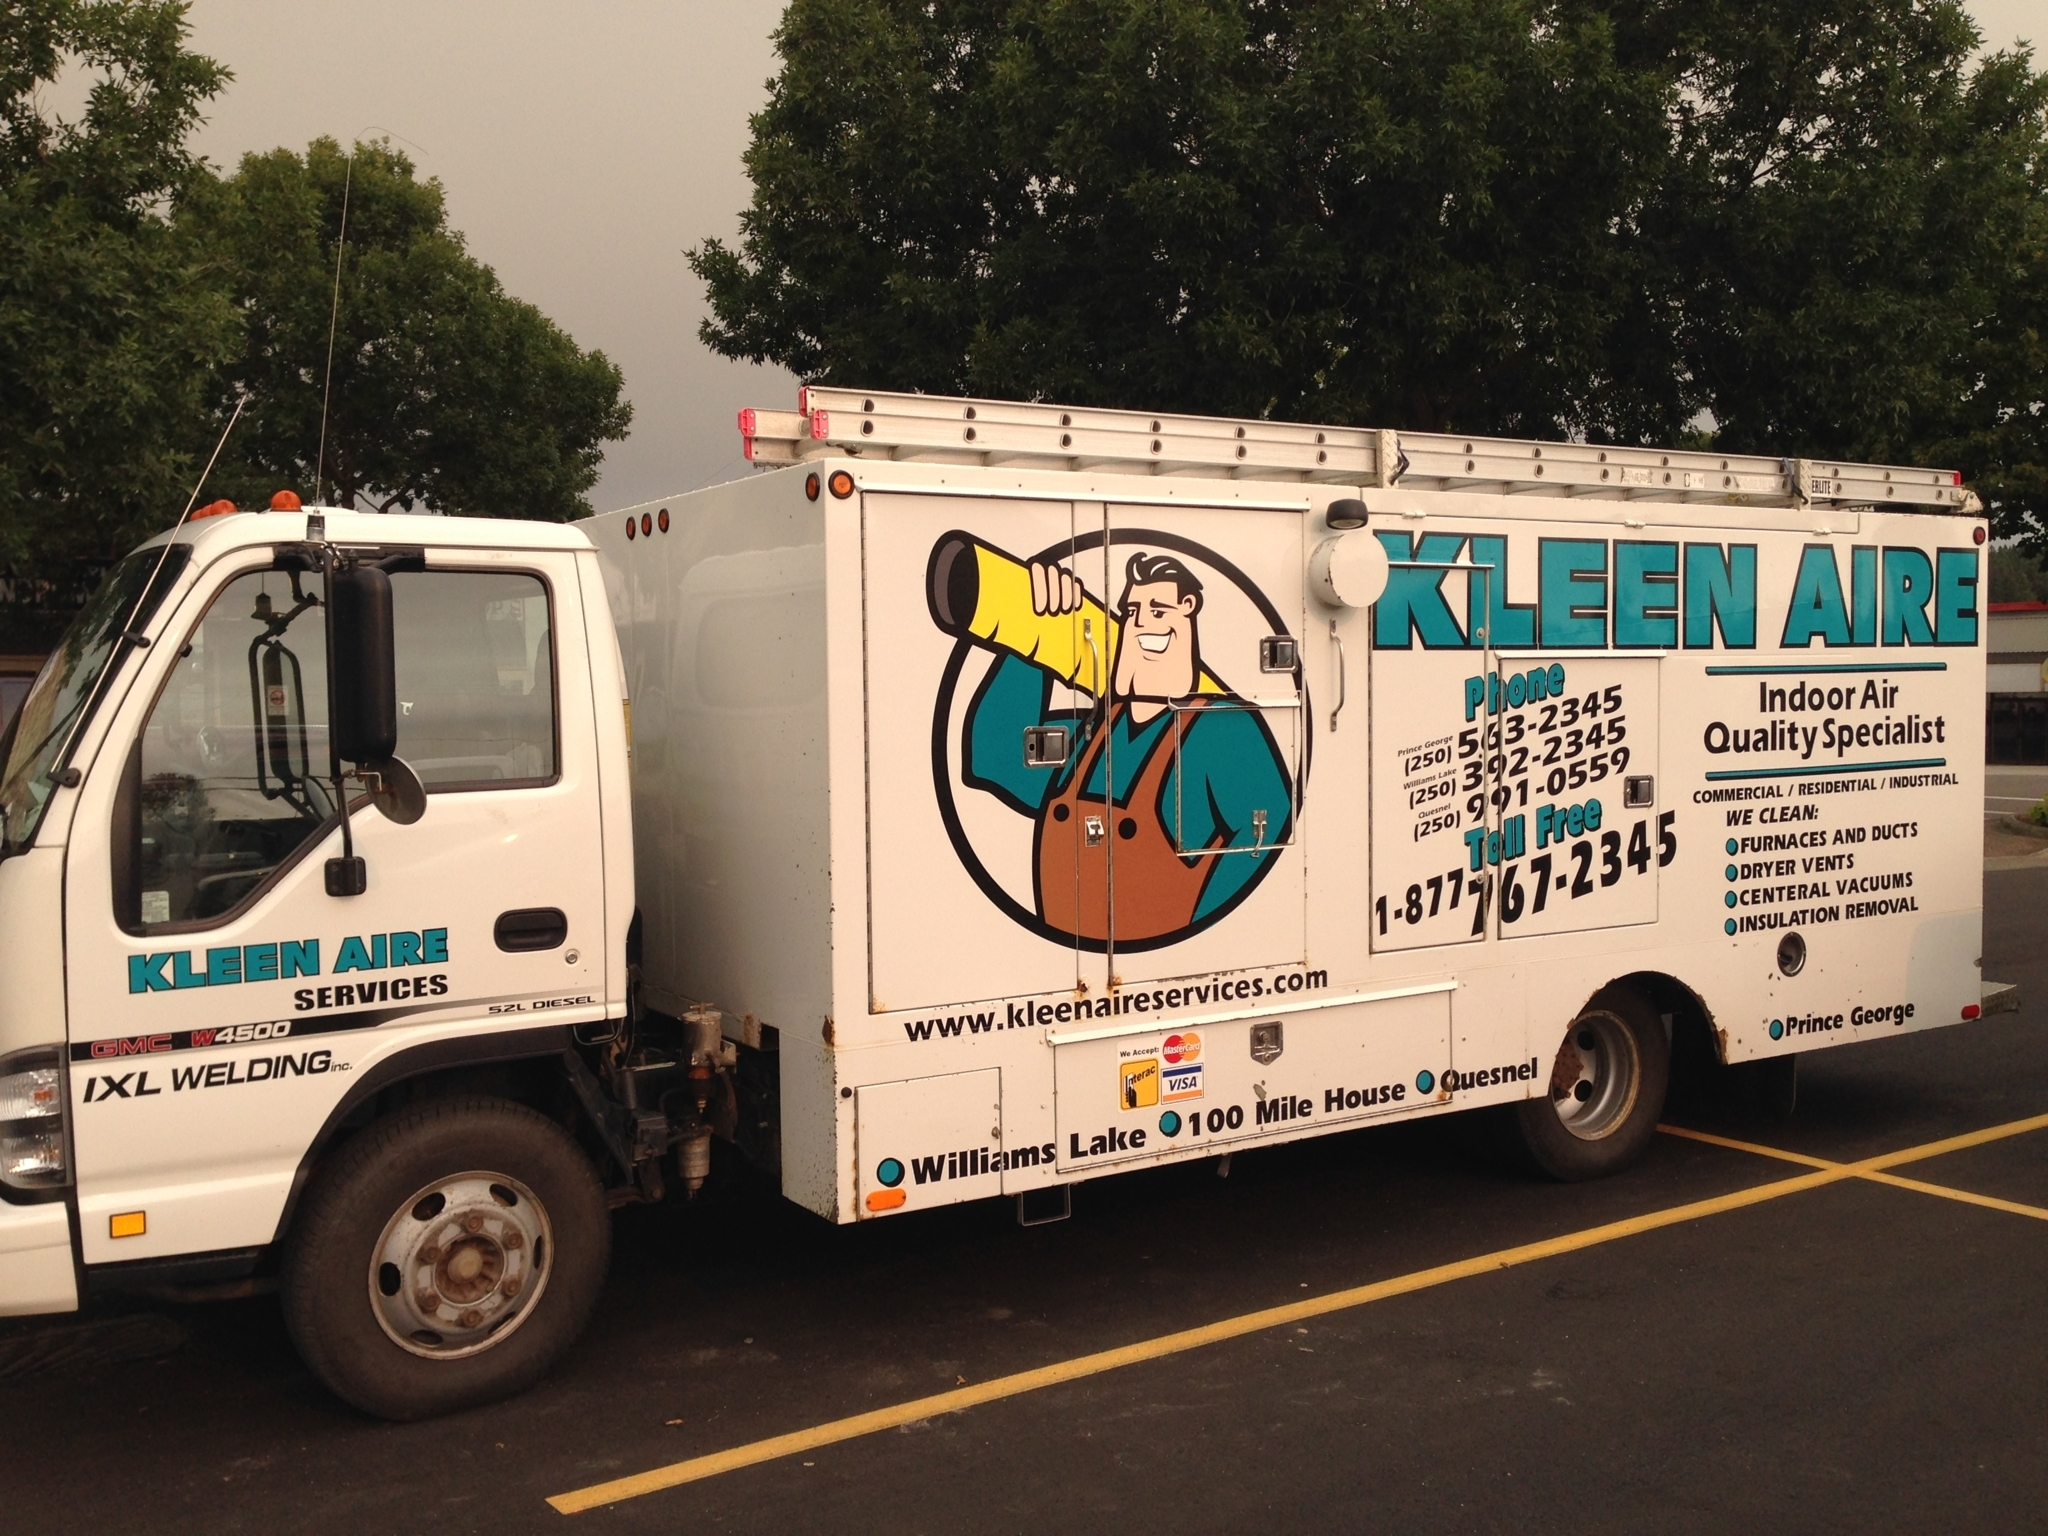 Kleen Aire Services in Williams Lake